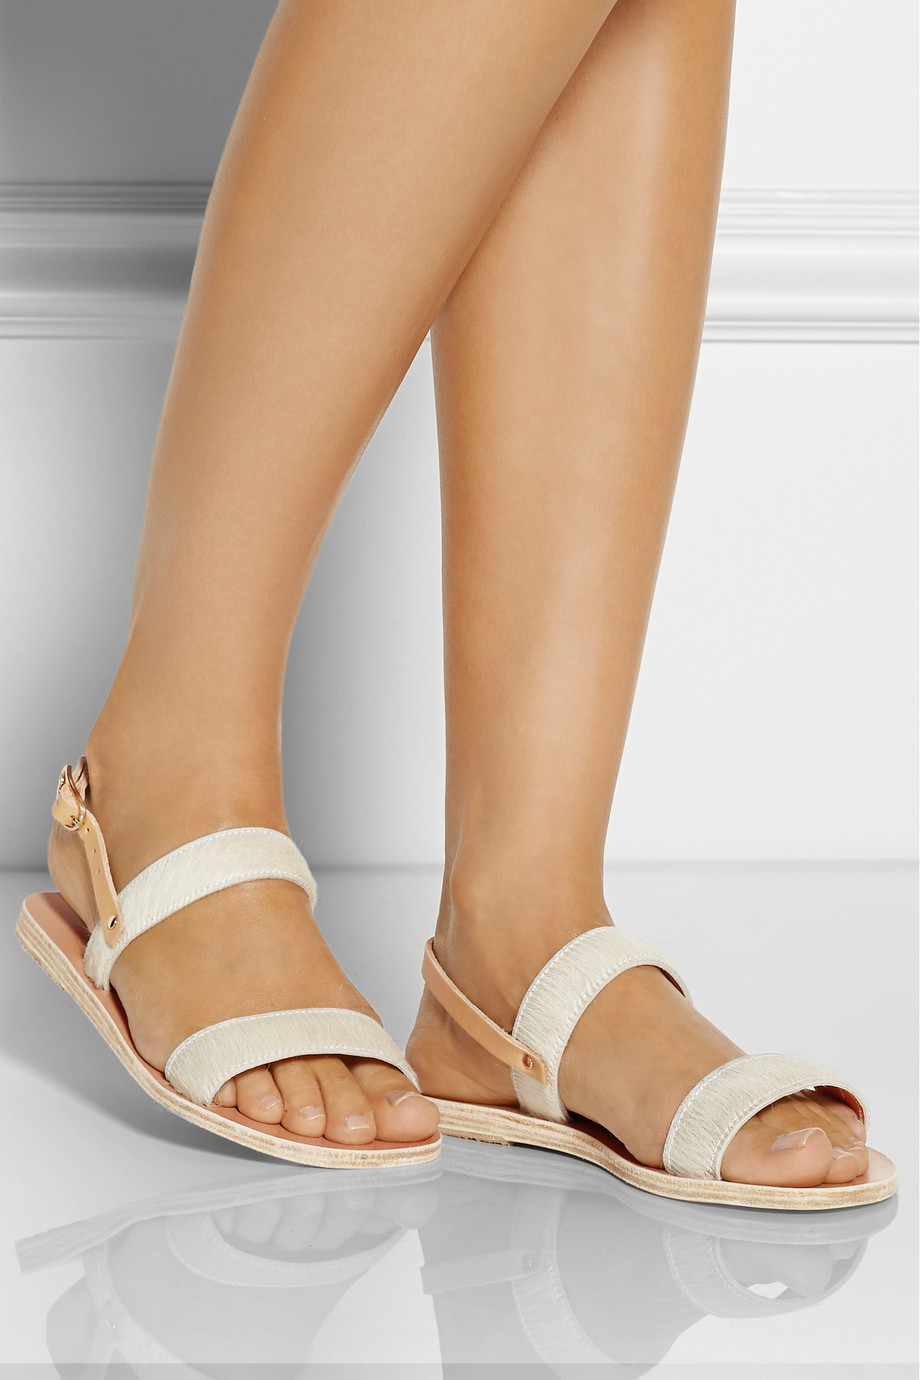 167e362baa00a Lyst - Ancient Greek Sandals Clio Calf Hair And Leather Sandals in White